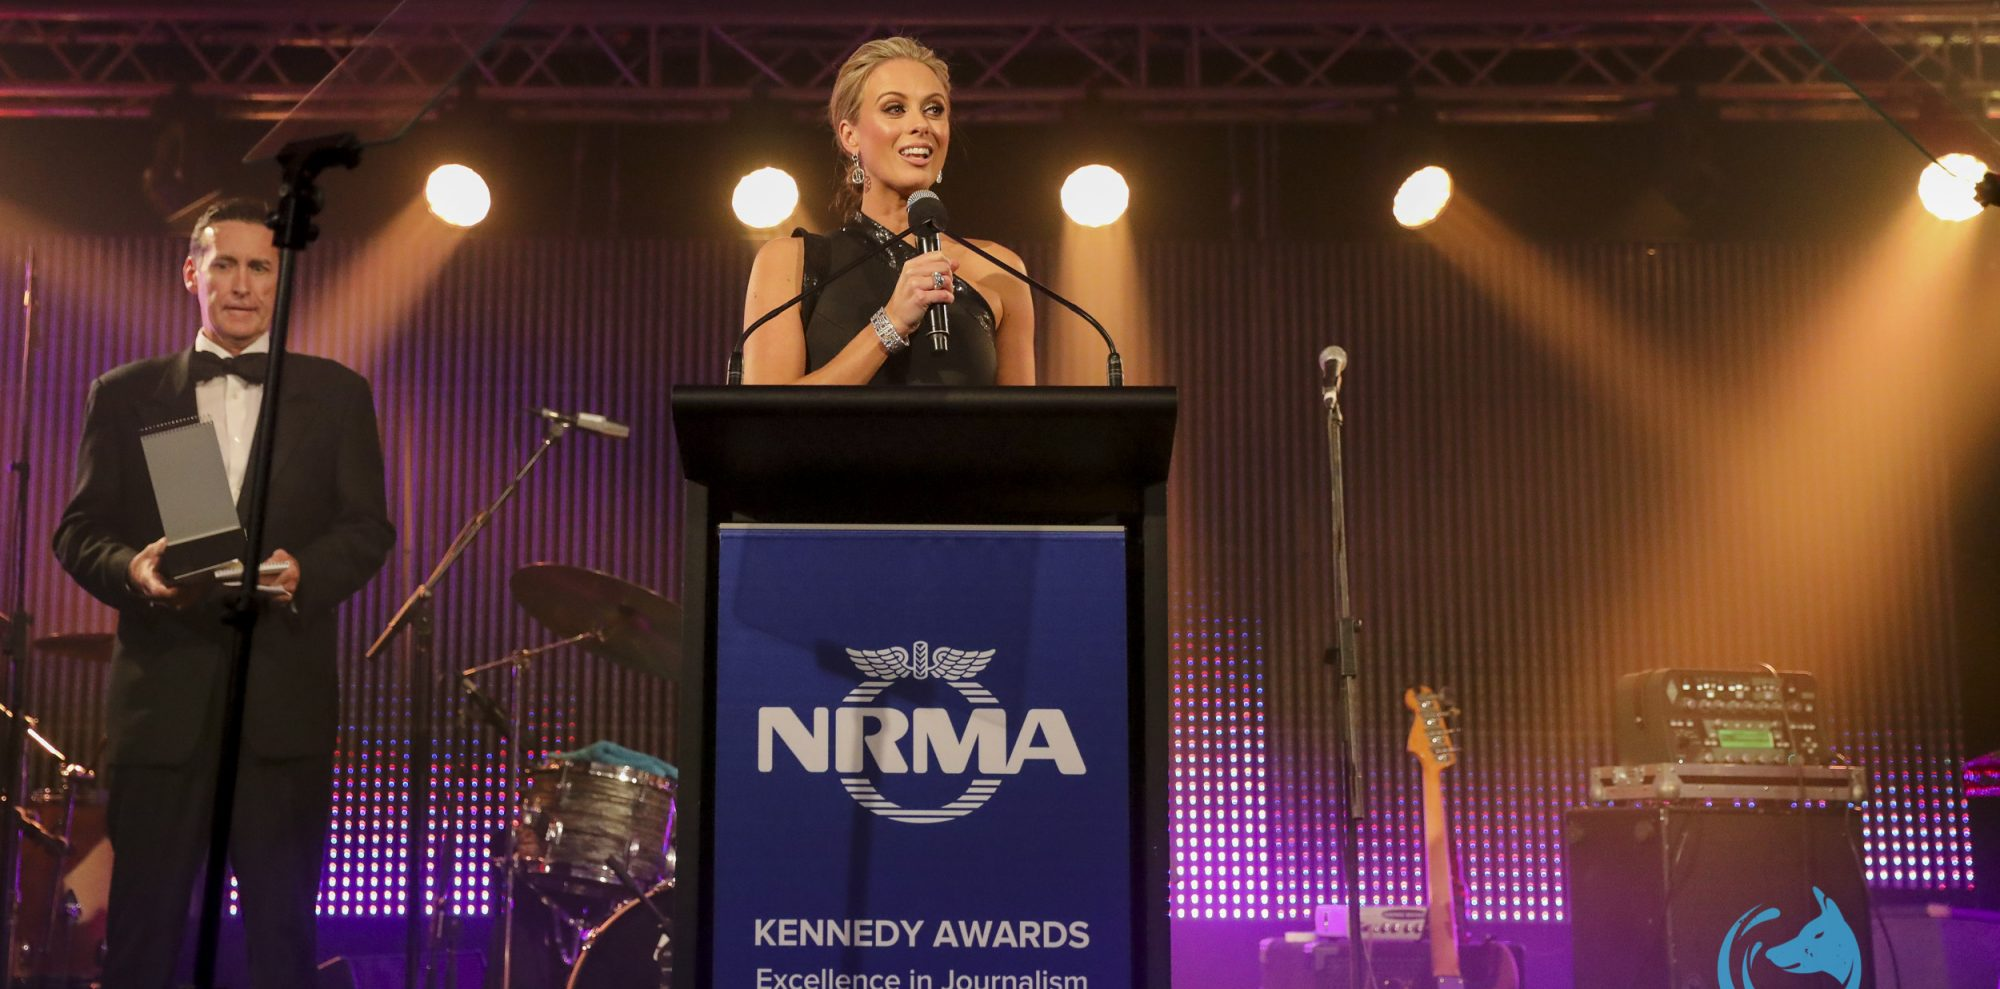 The NRMA Kennedy Awards